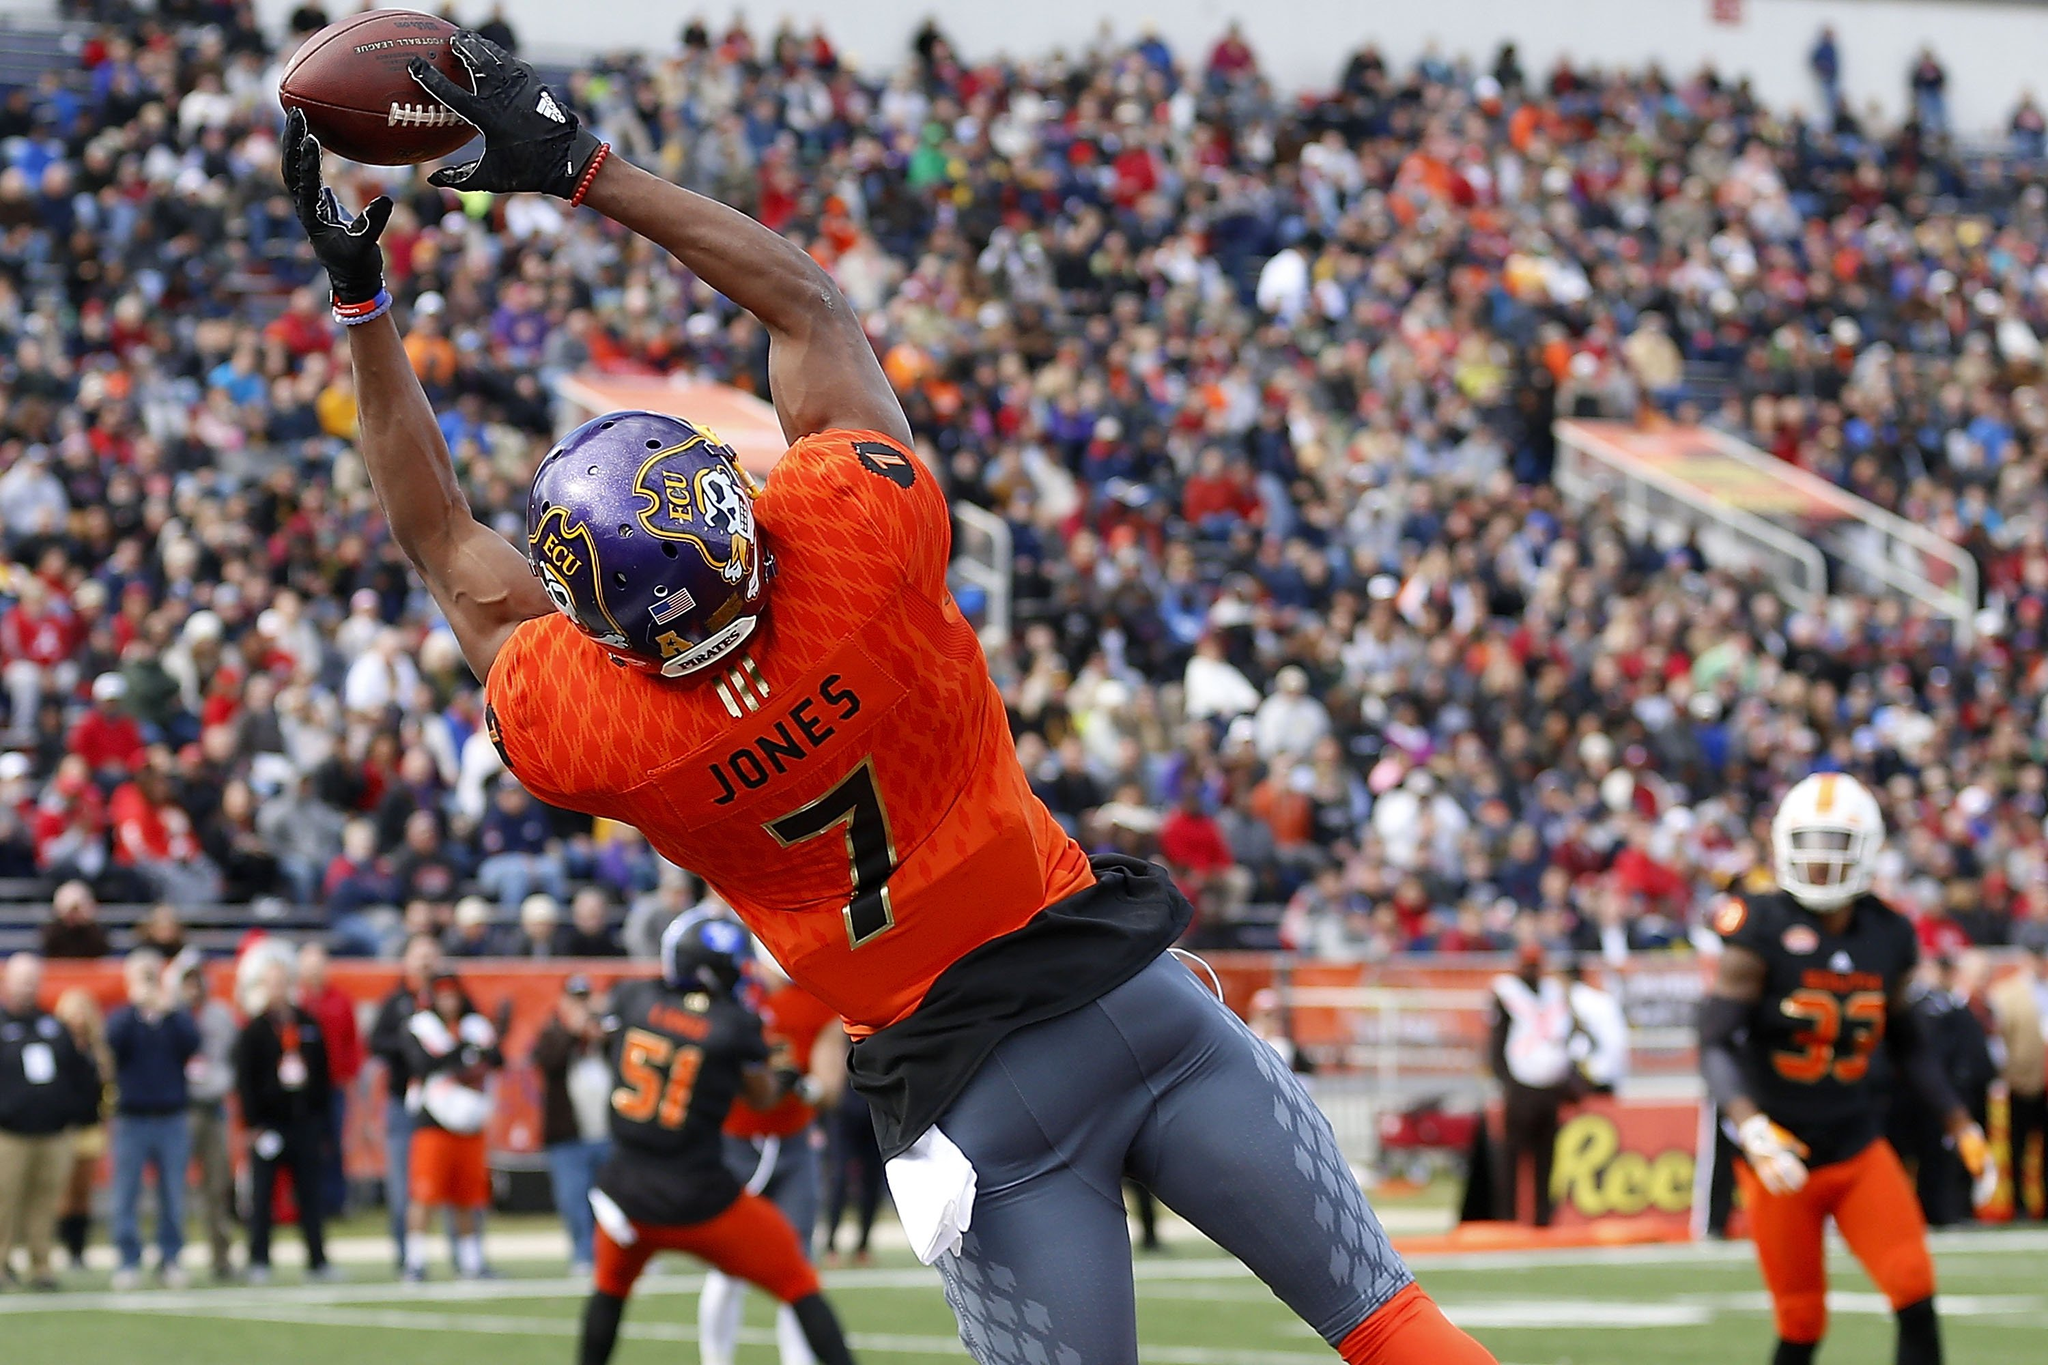 East Carolina wide receiver Zay Jones could be a target for the Buffalo Bills in the second round of the NFL Draft. (Getty Images)